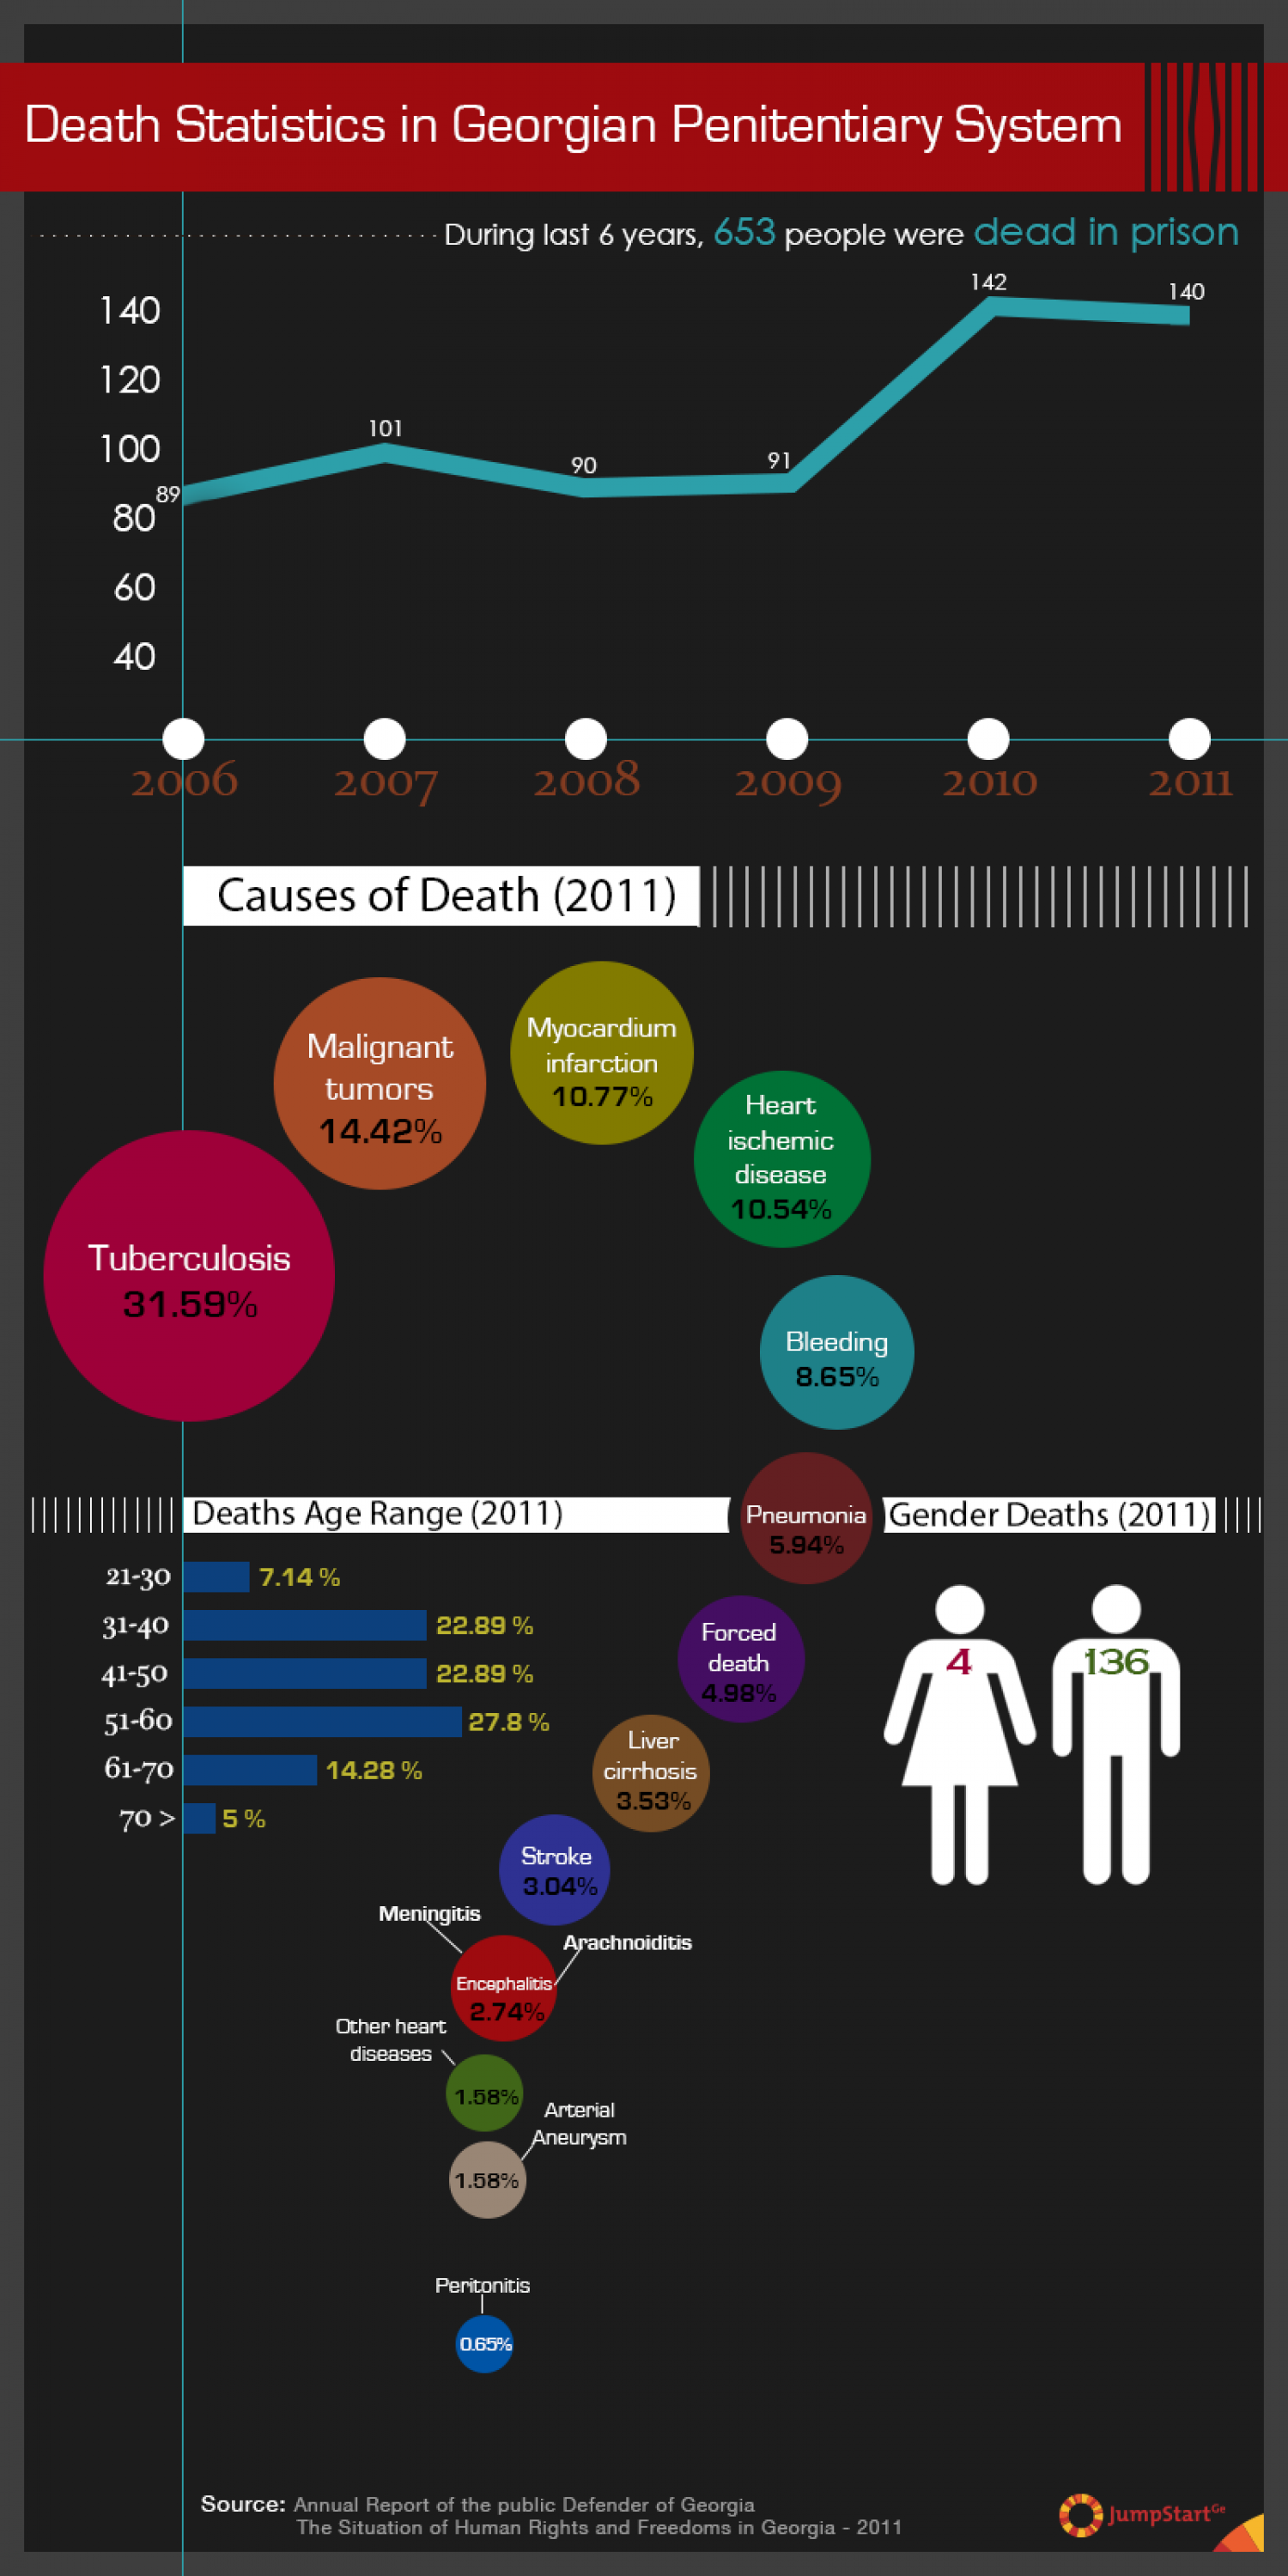 Death Statistics in Georgian Penitentiary System Infographic